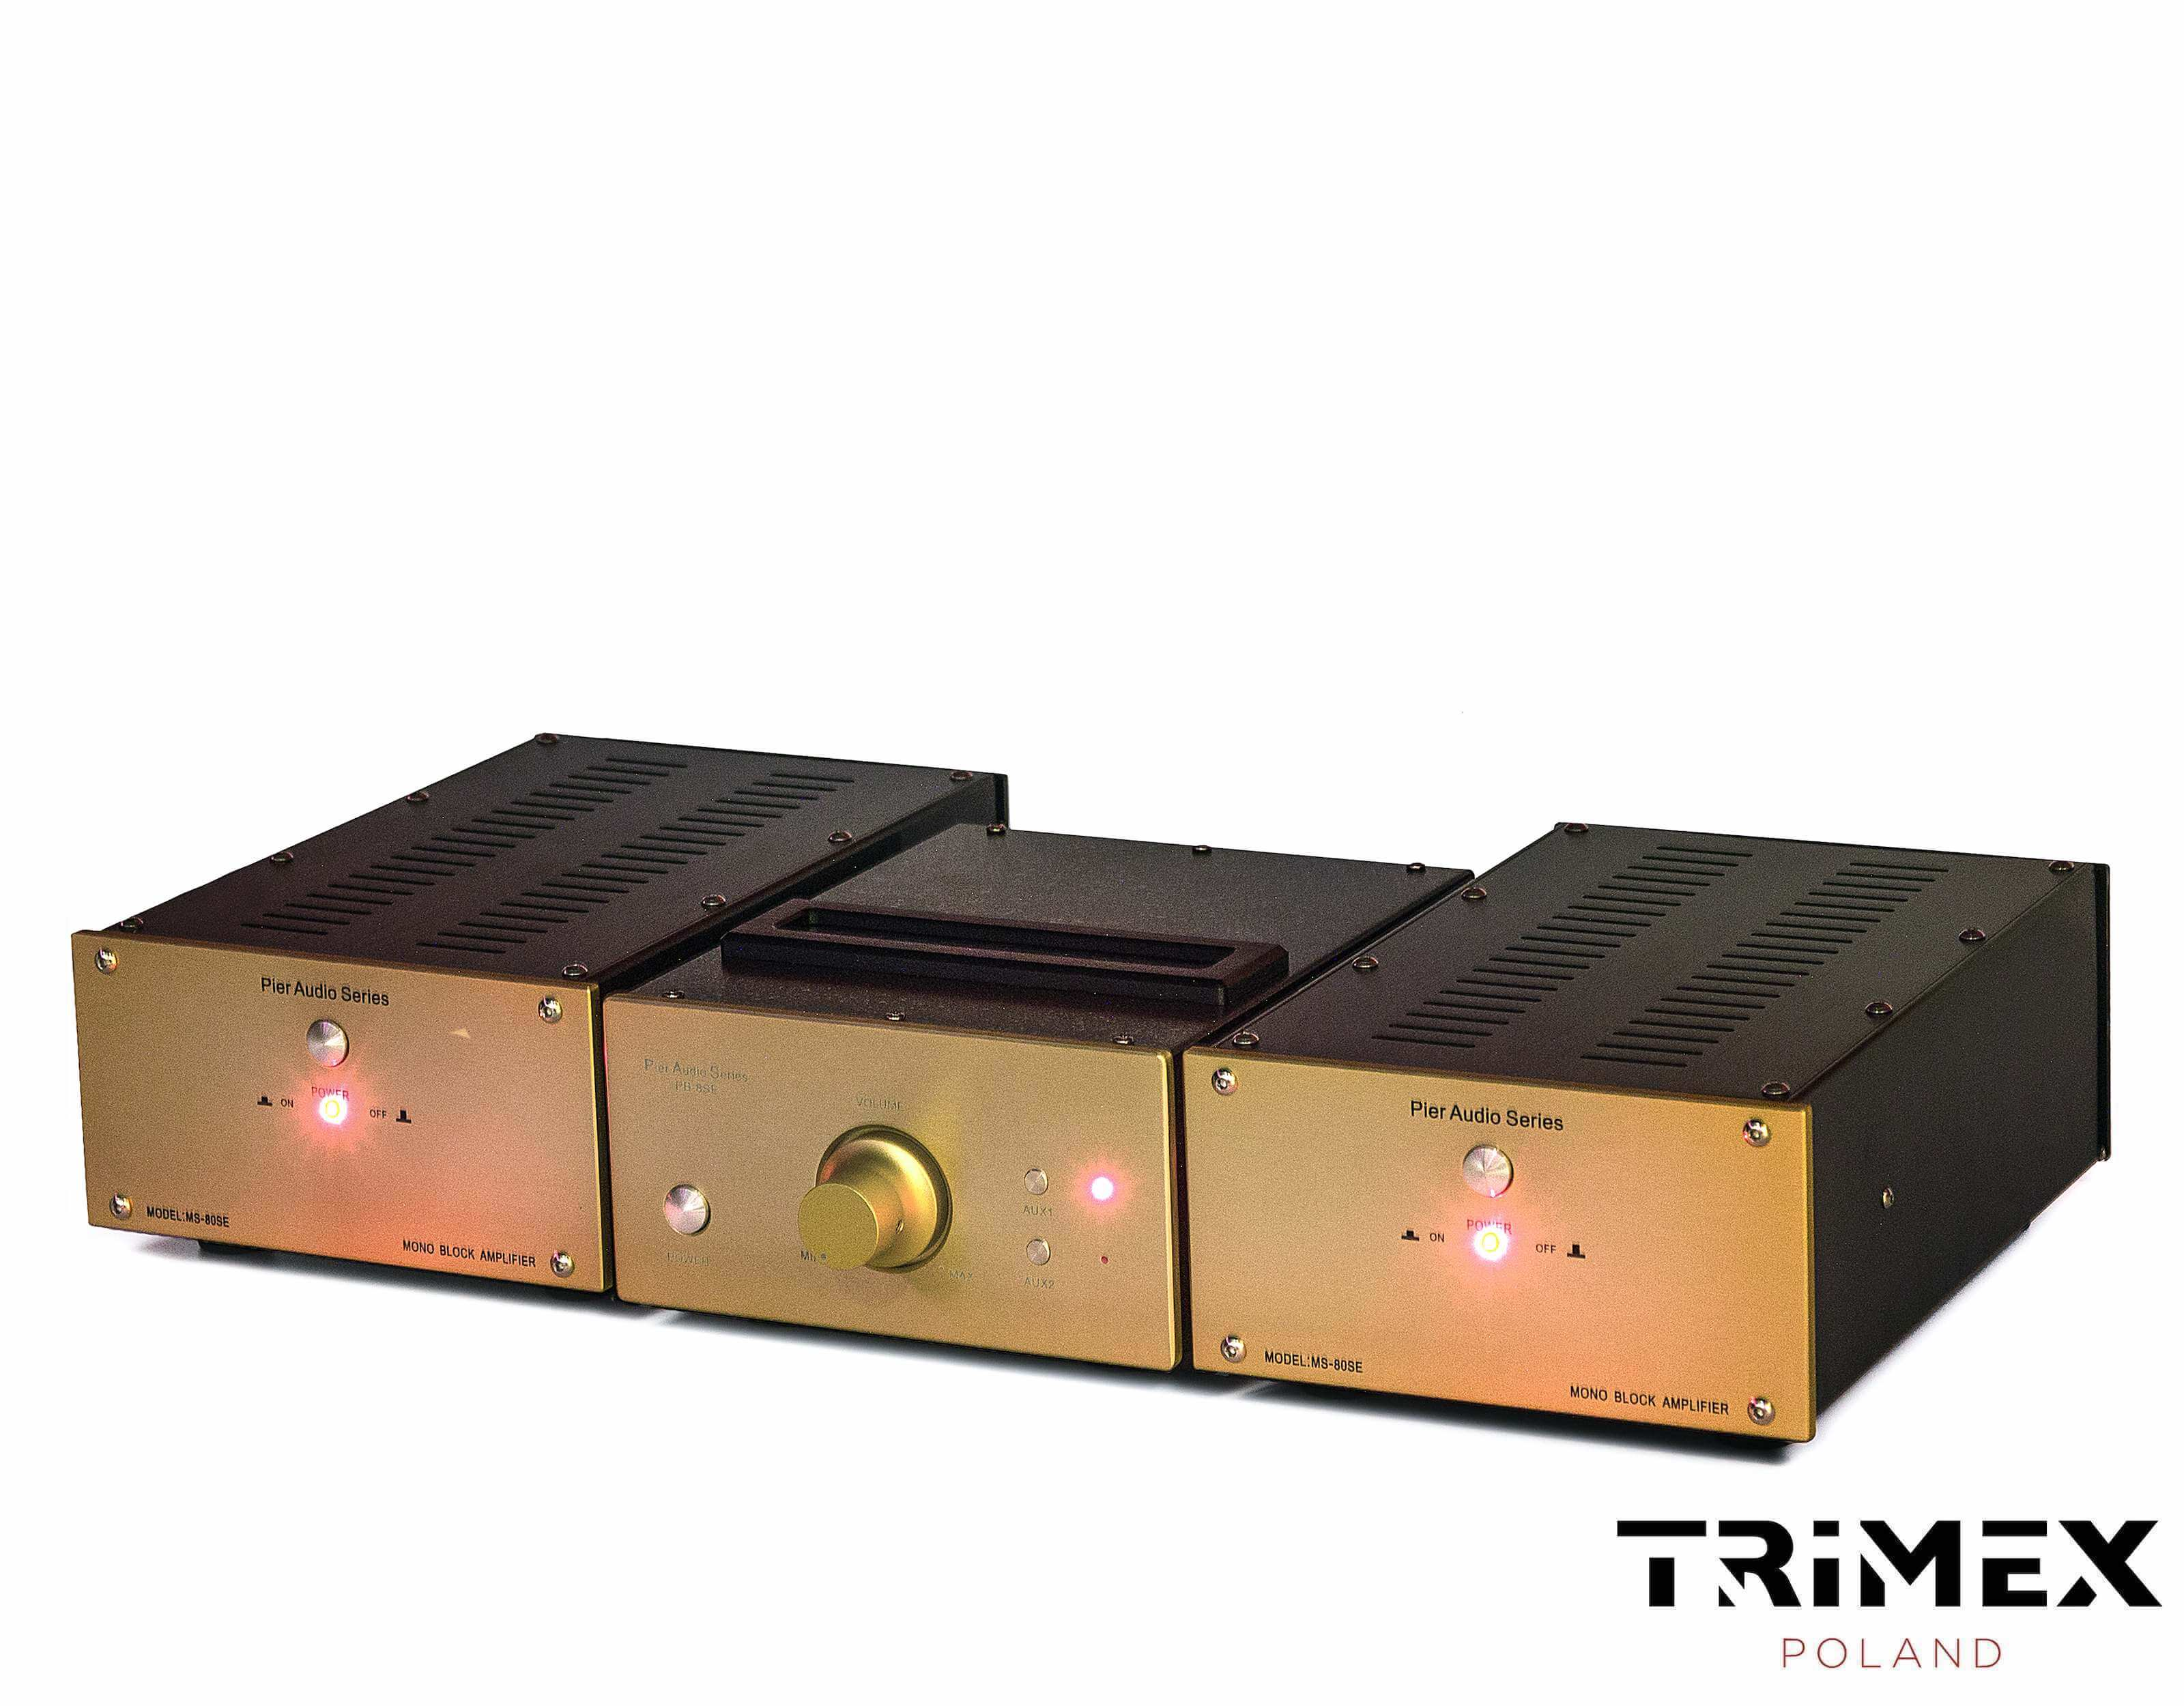 pier audio PB 8SE MS 80SE trimex poland 6